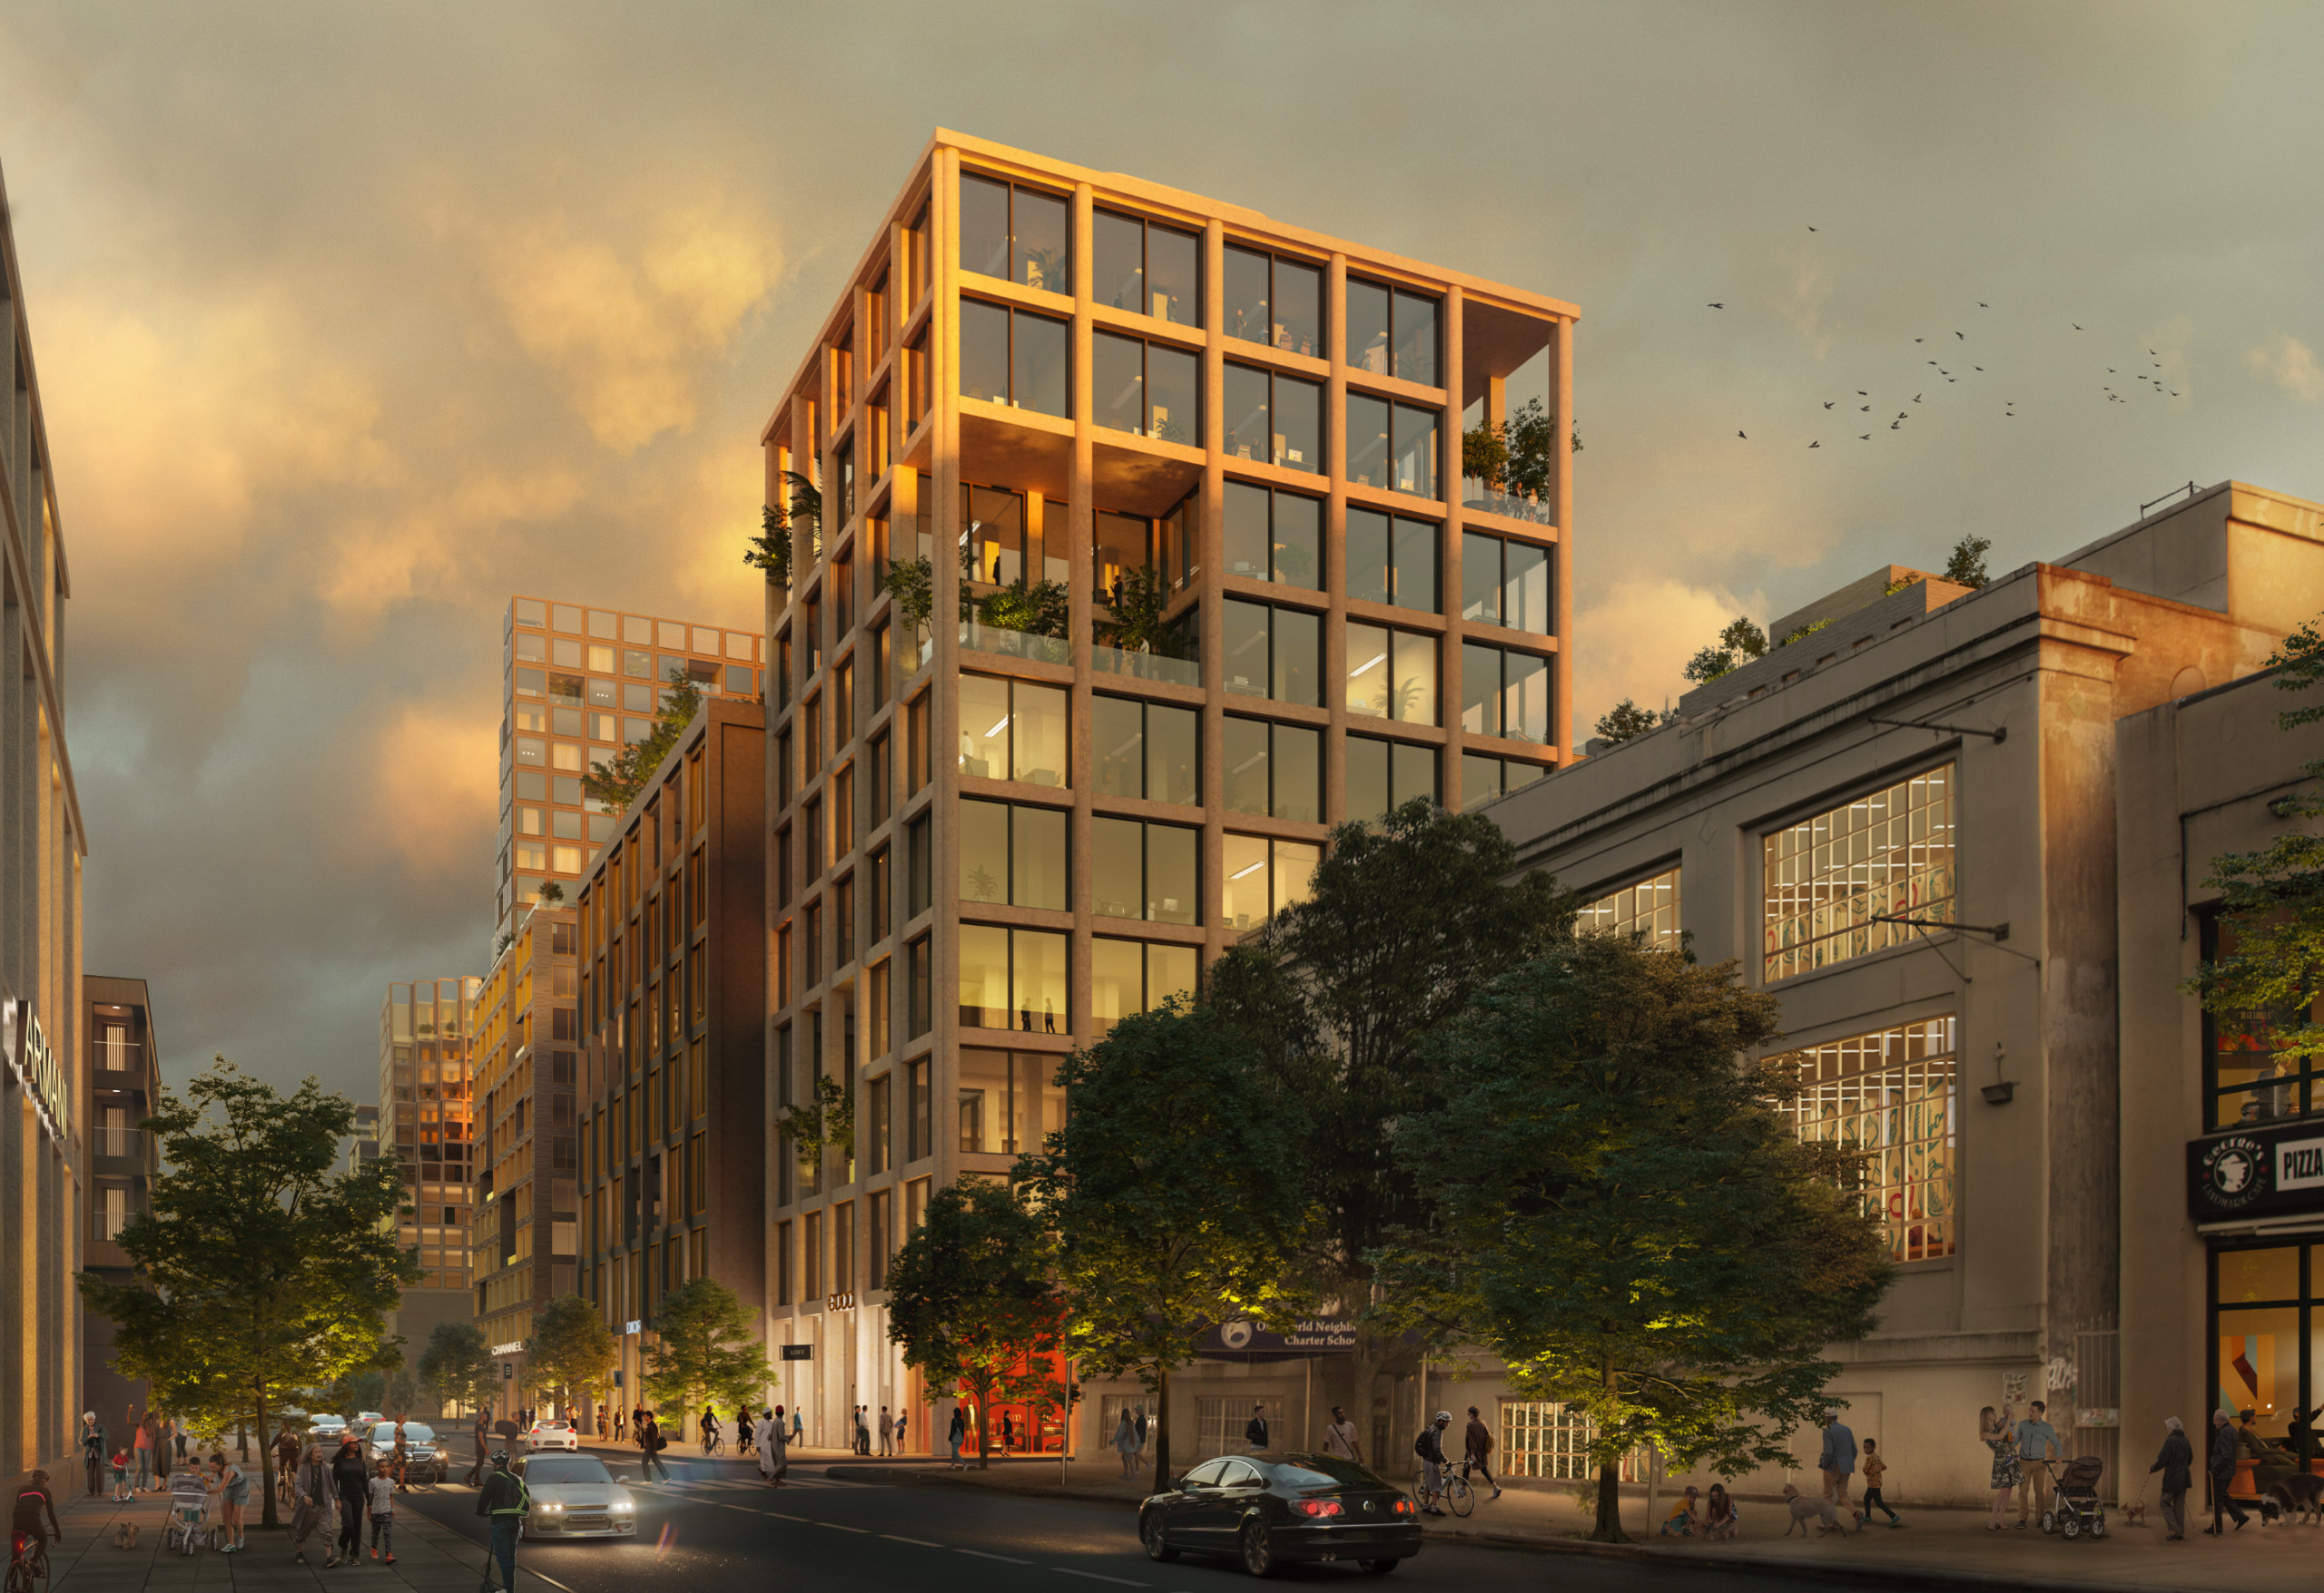 Rendering of a boxy glass building with plaza gaps